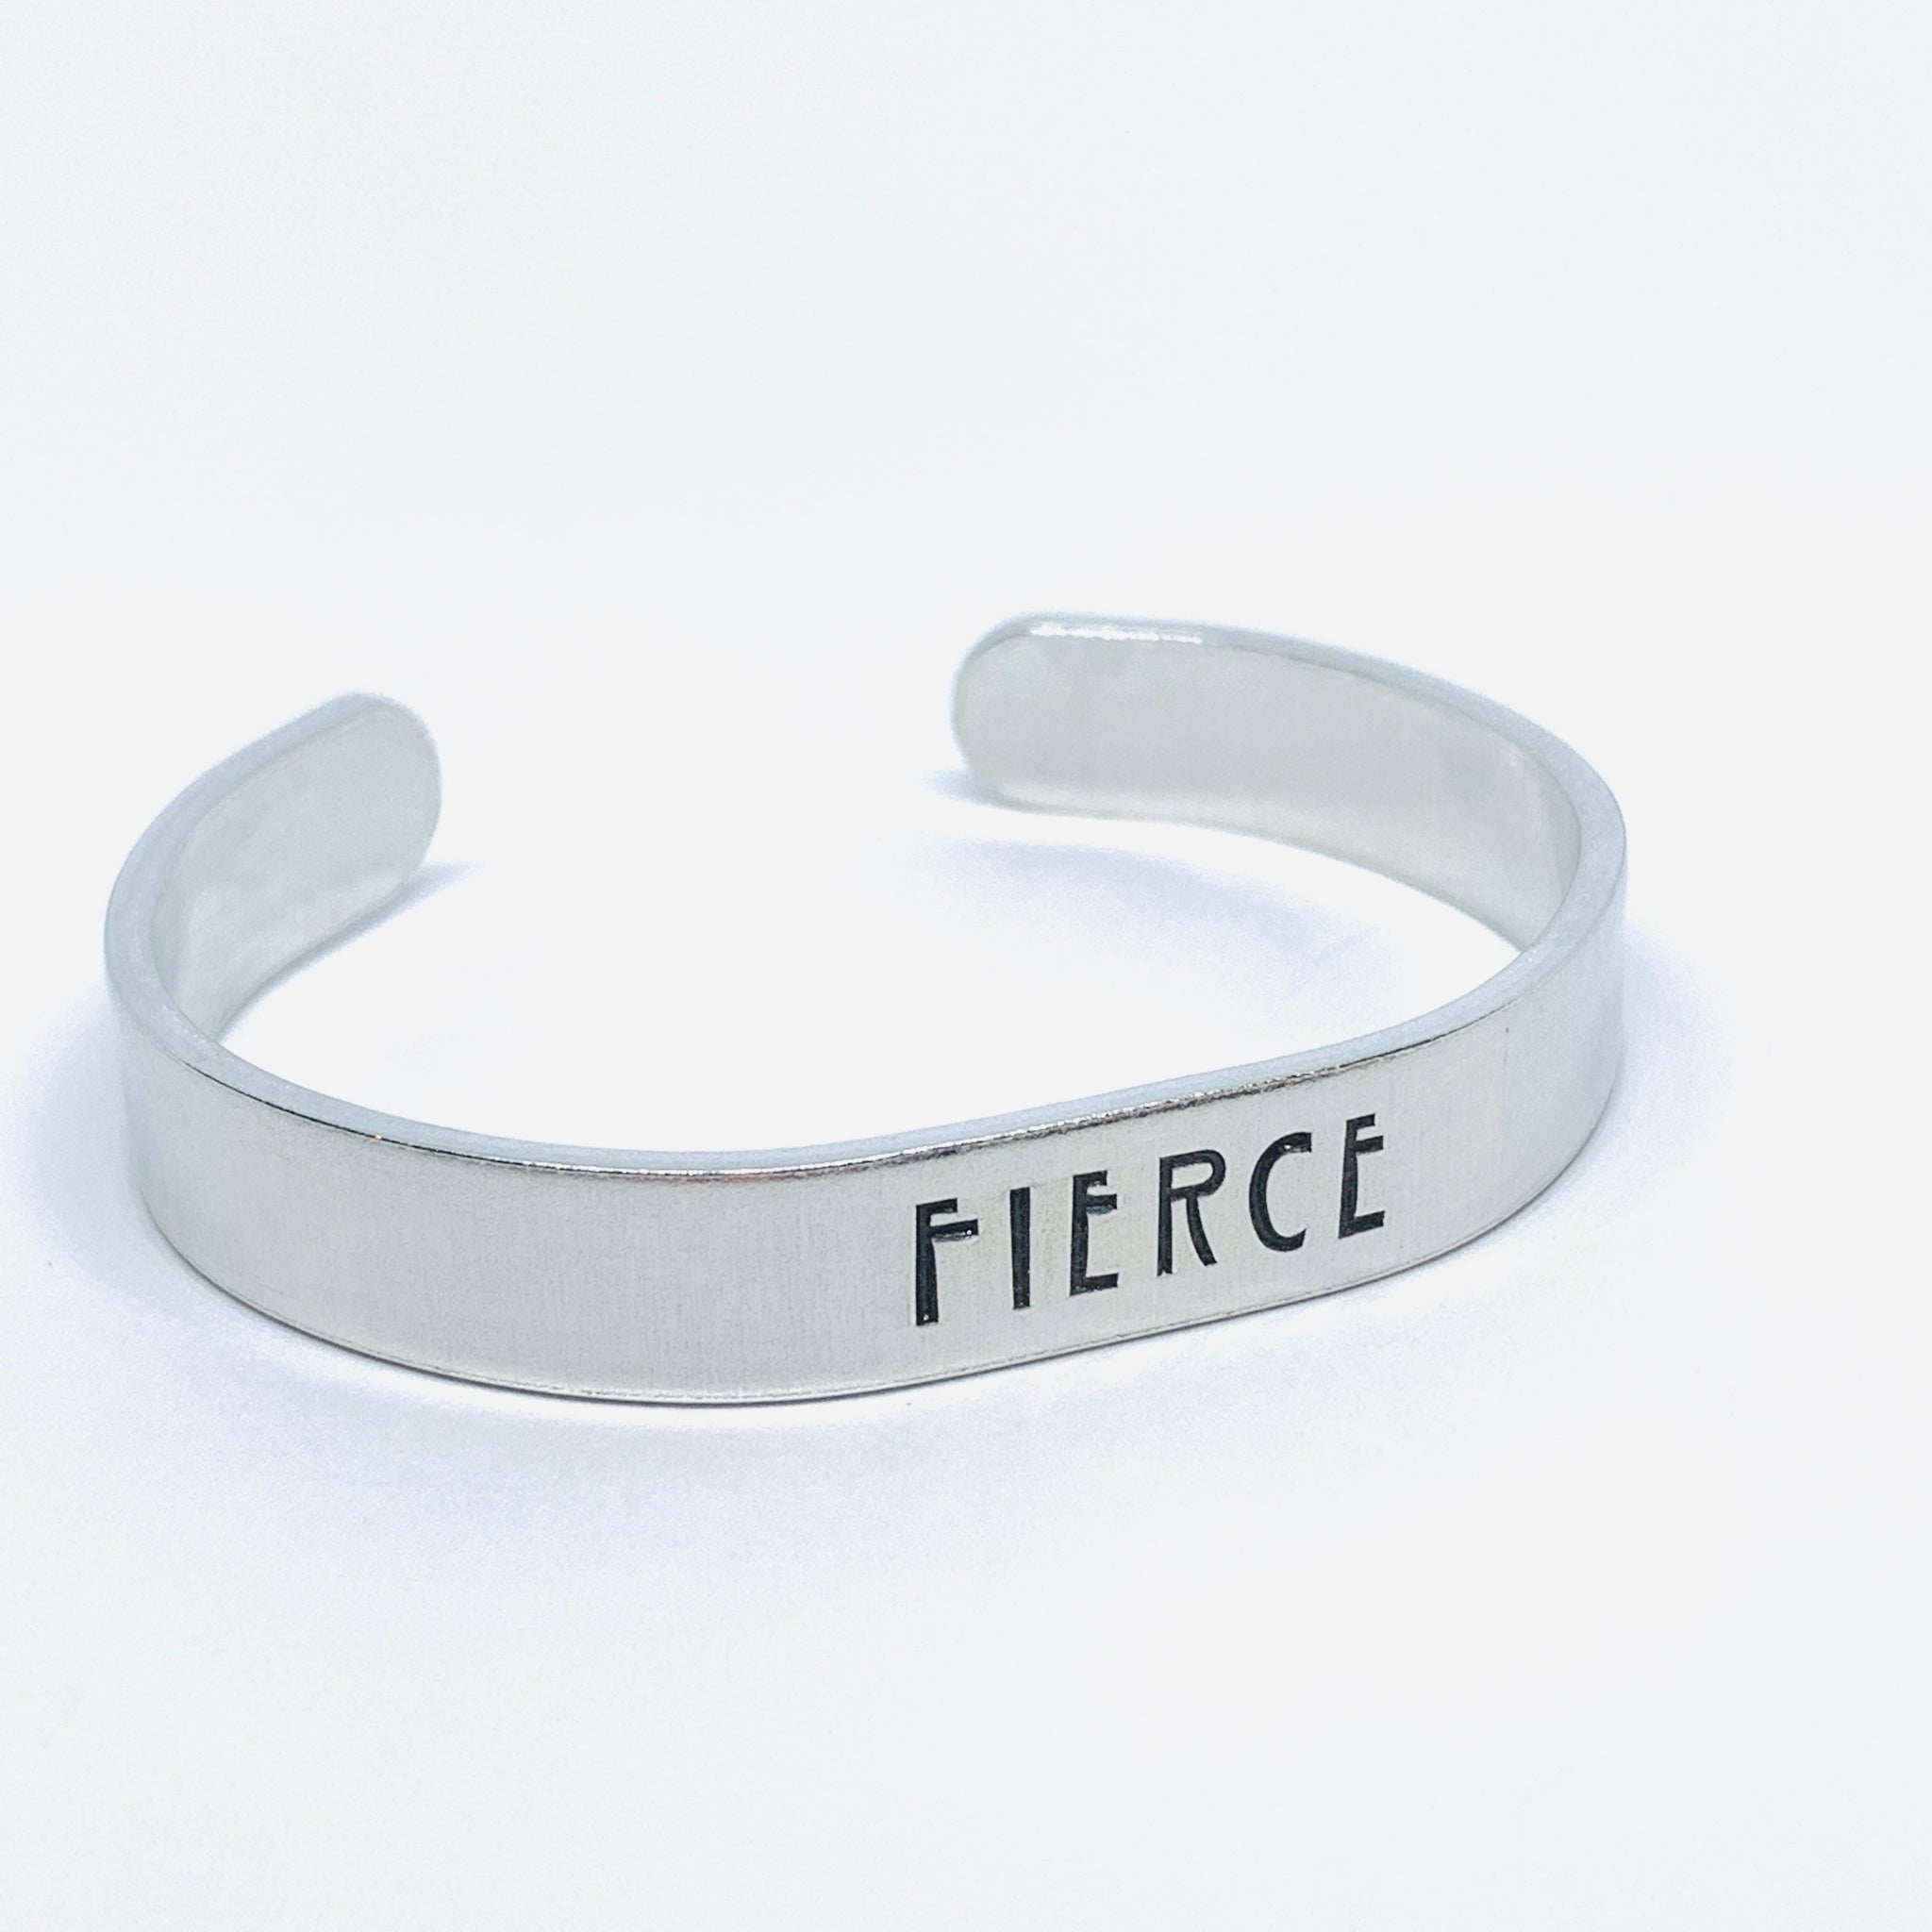 FIERCE - Hand Stamped Cuff Bracelet